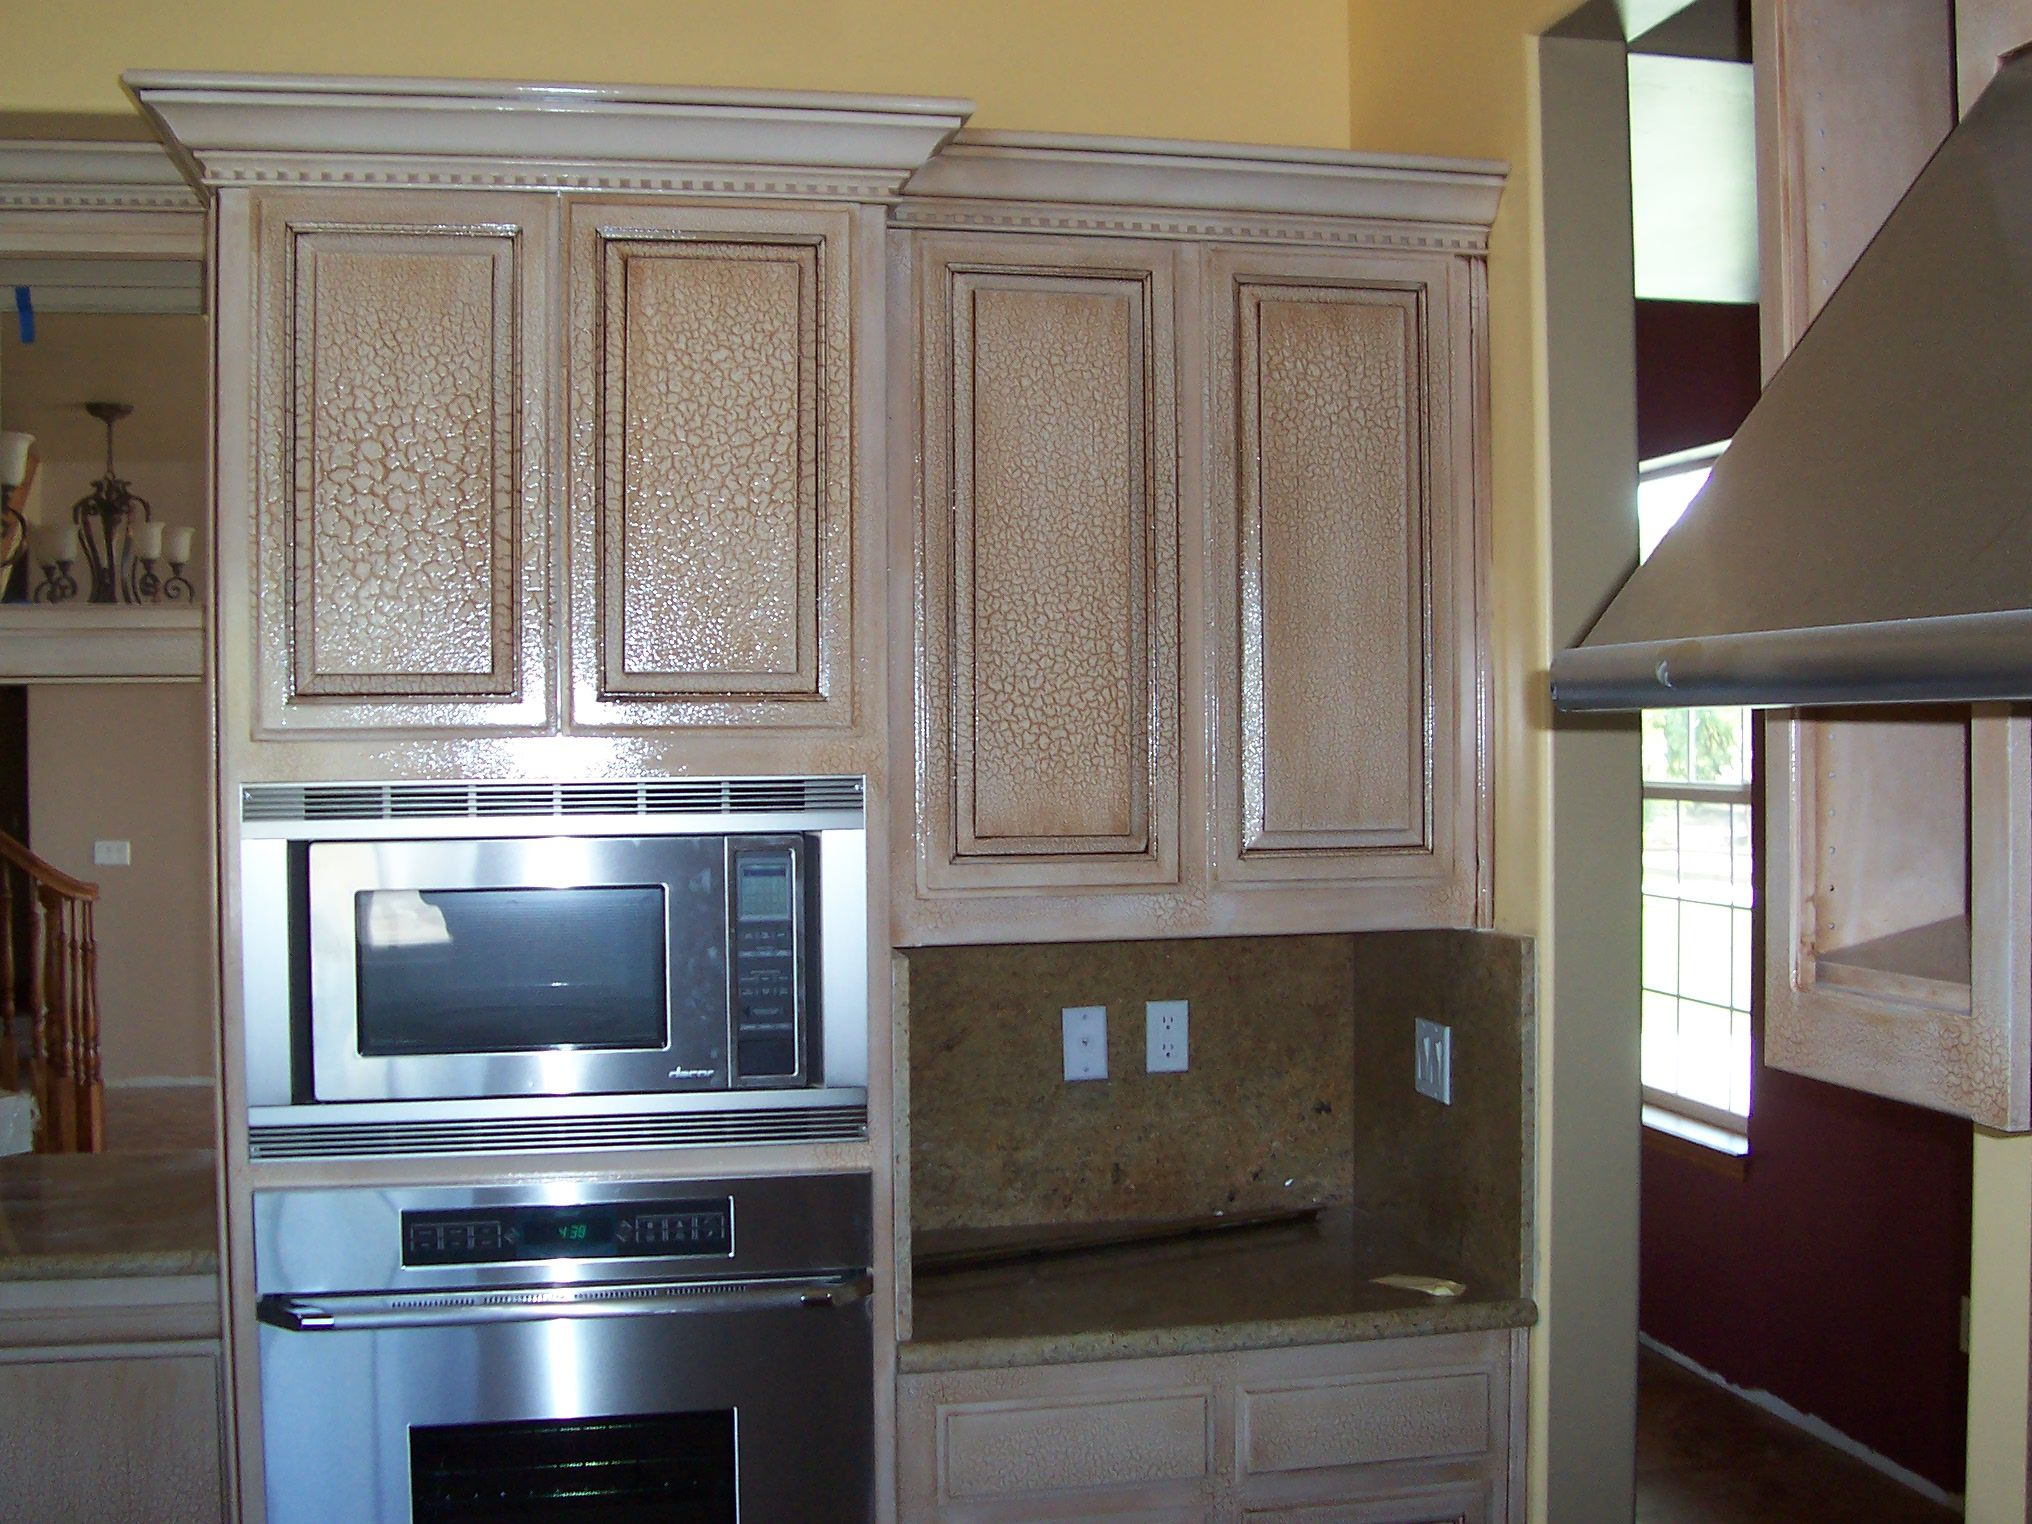 crackle finish on kitchen cabinets